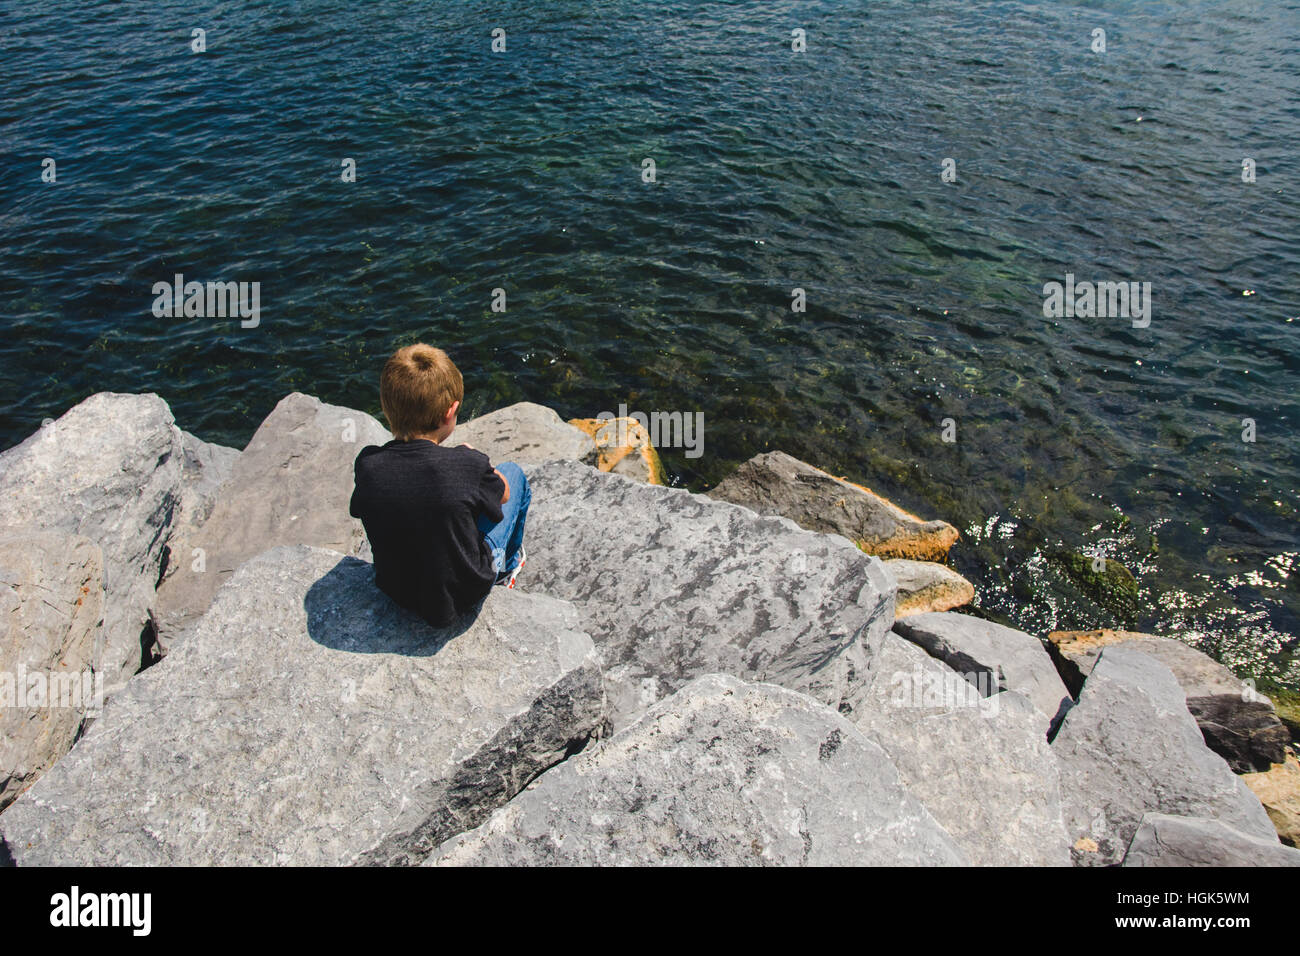 A boy sits on a rock at a lake in the Finger Lakes region of NY - Stock Image